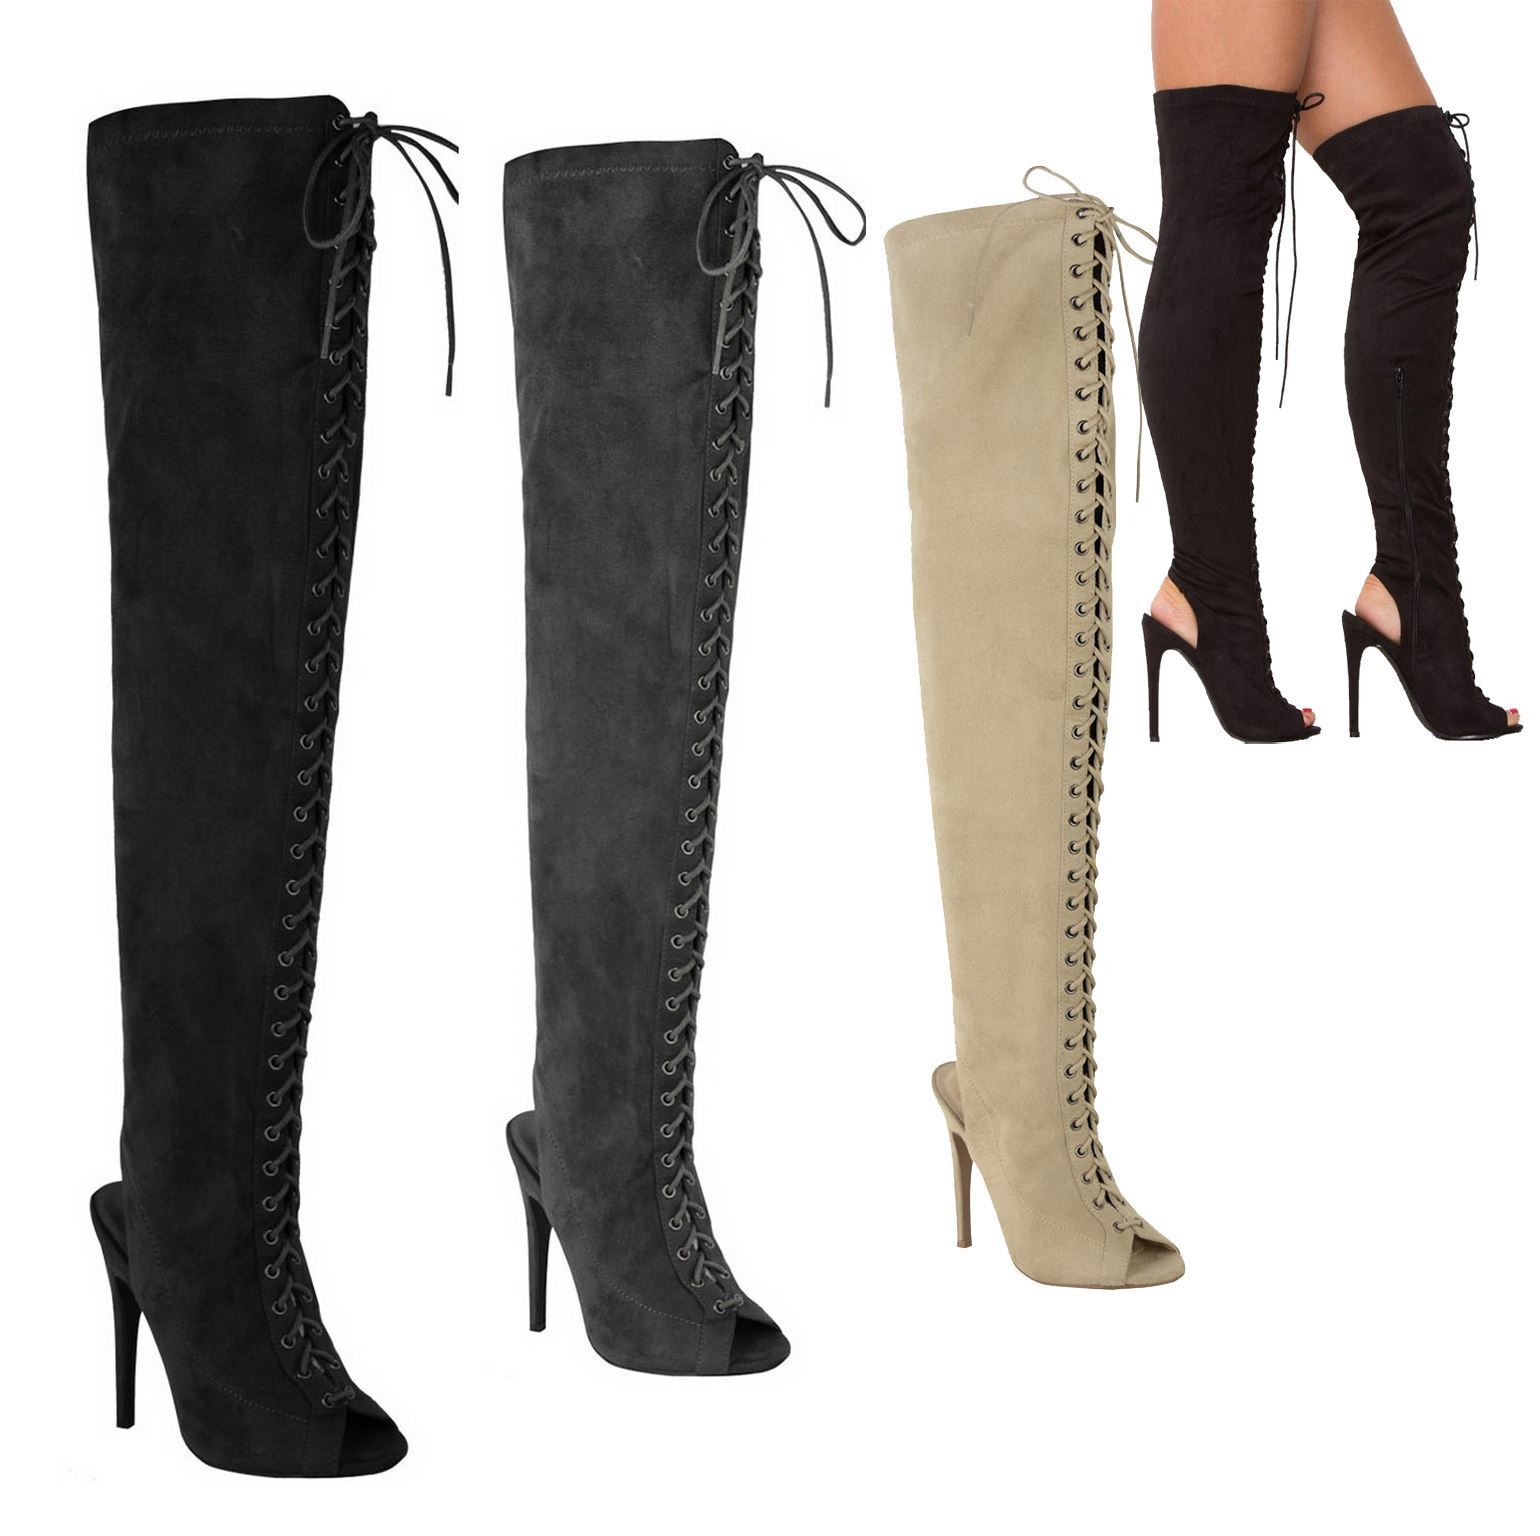 WOMENS LADIES SEXY THIGH HIGH STRETCH OVER KNEE LACE UP STILETTO HEEL BOOTS SIZE